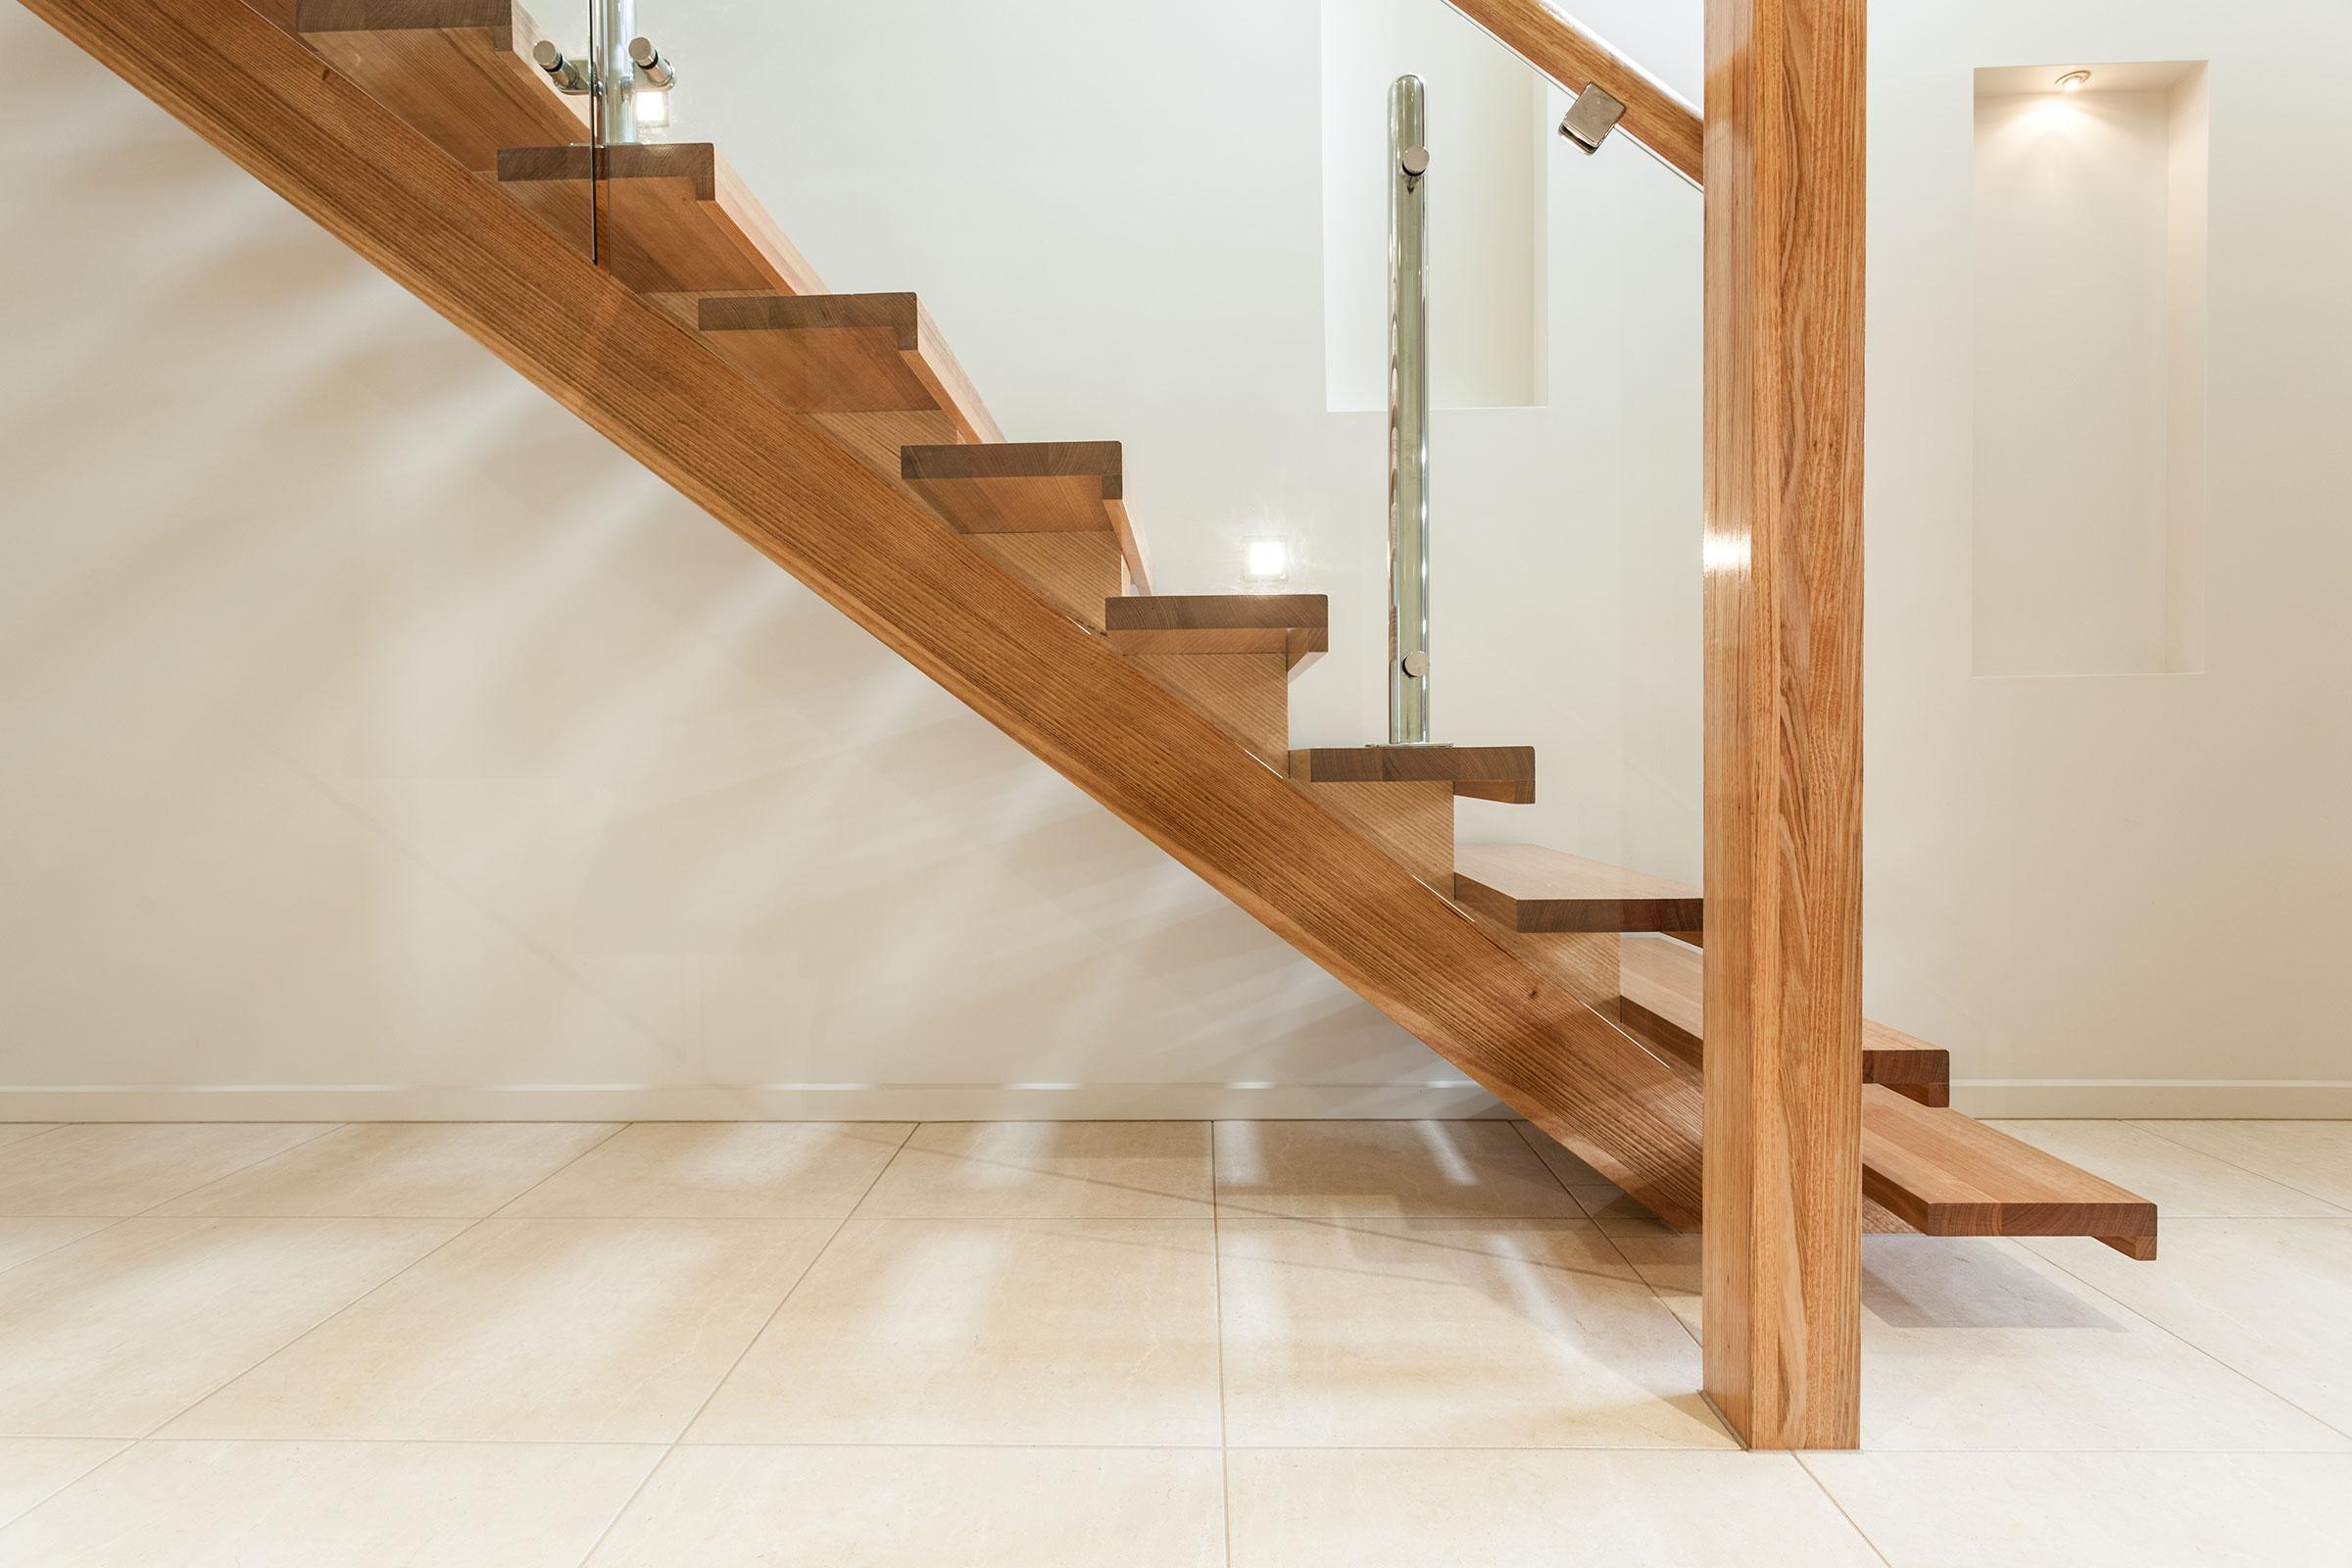 100 Stair Treads Timber Stair By Daizen Daizen Joinery